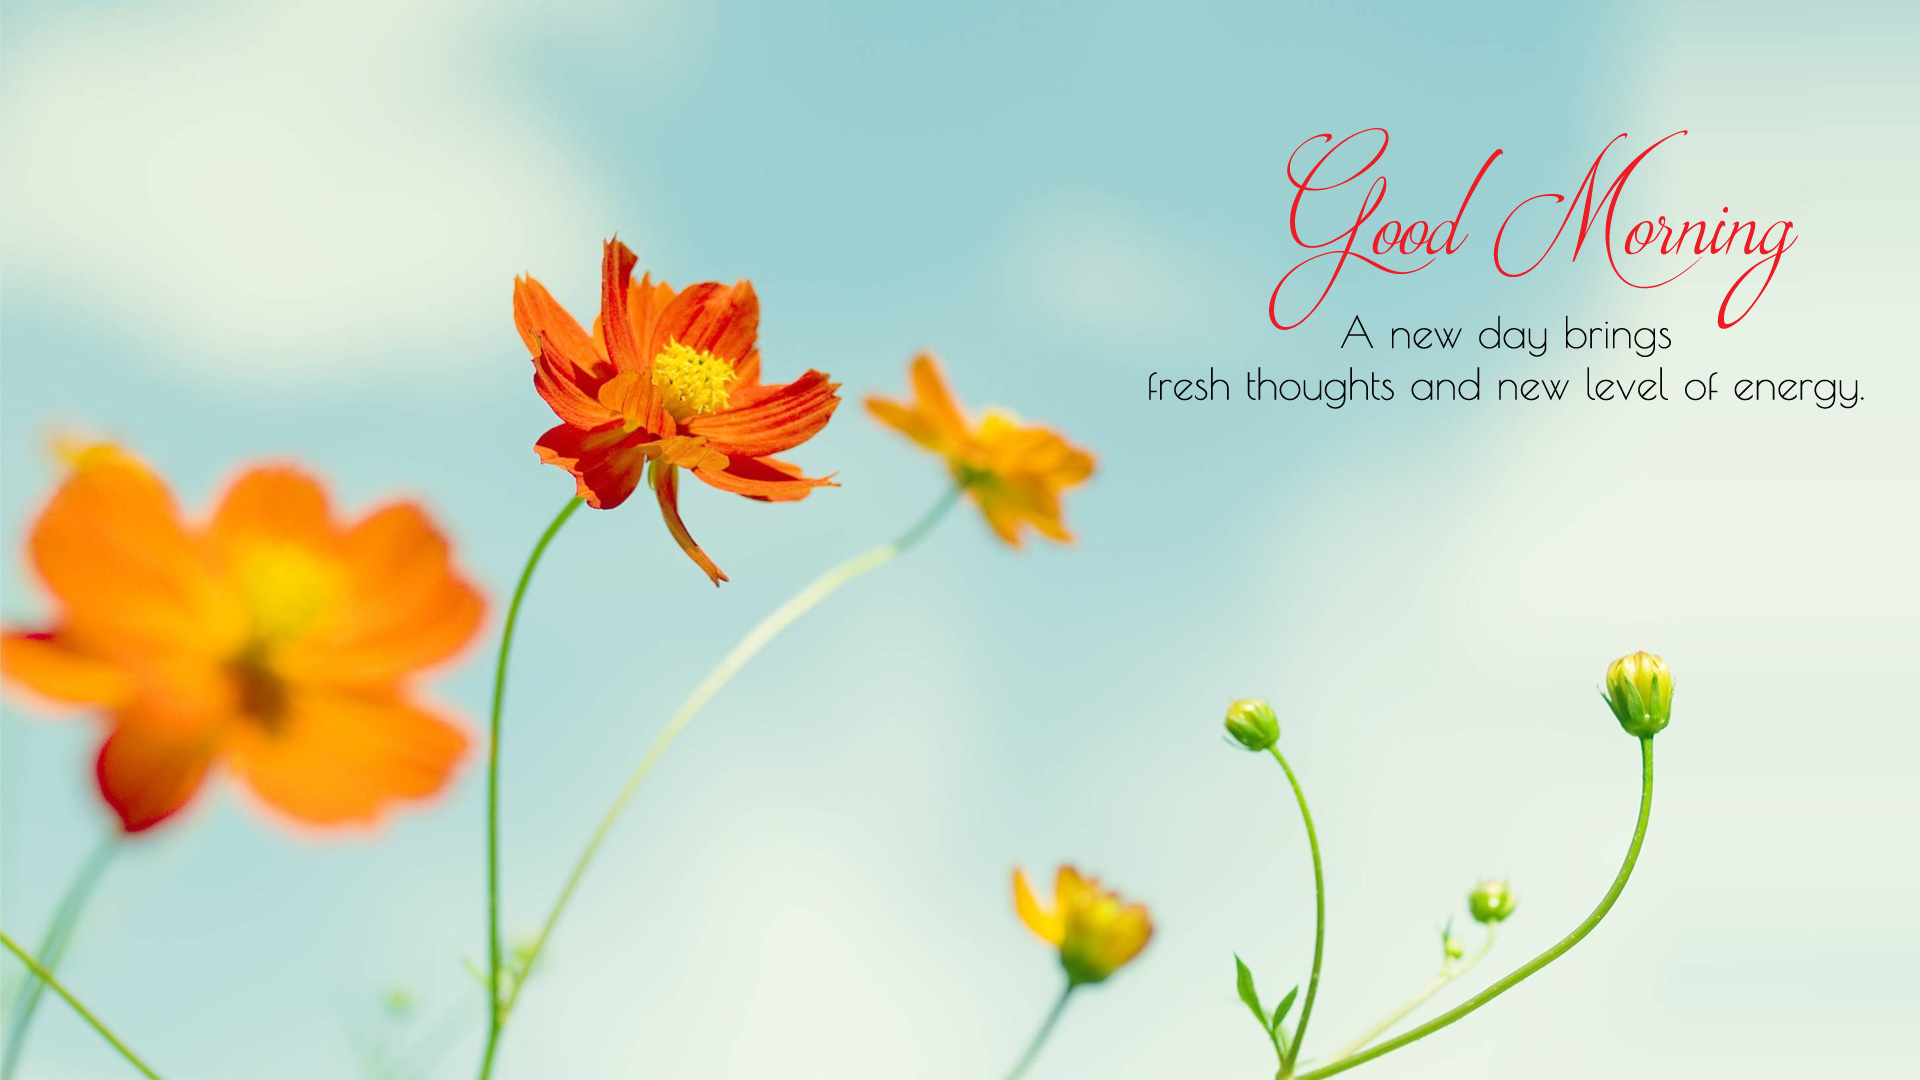 Gm Wallpaper With Love : Good Morning Wallpaper with Flowers, Full HD 1920x1080 GM Images